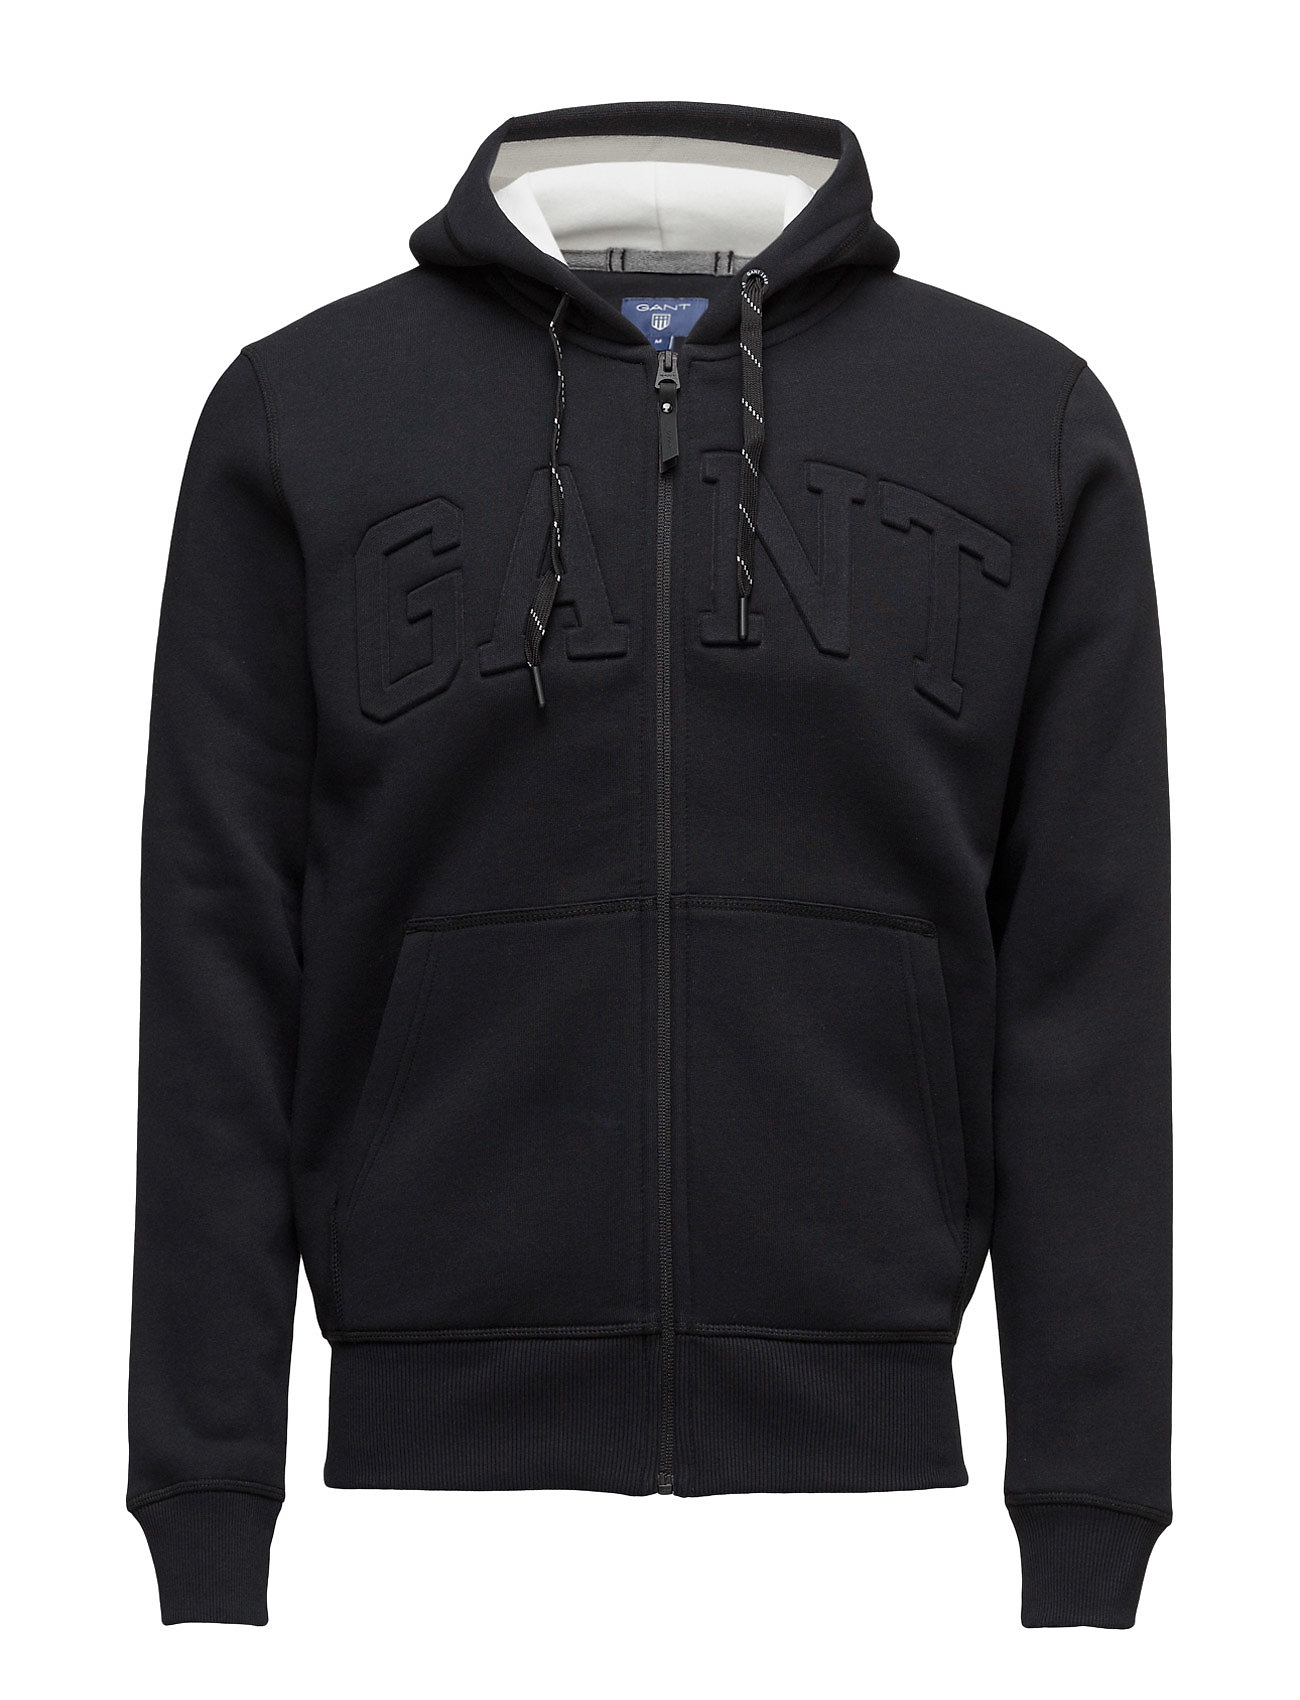 Gant GANT EMBOSSED FULL ZIP SWEAT HOODIE - BLACK